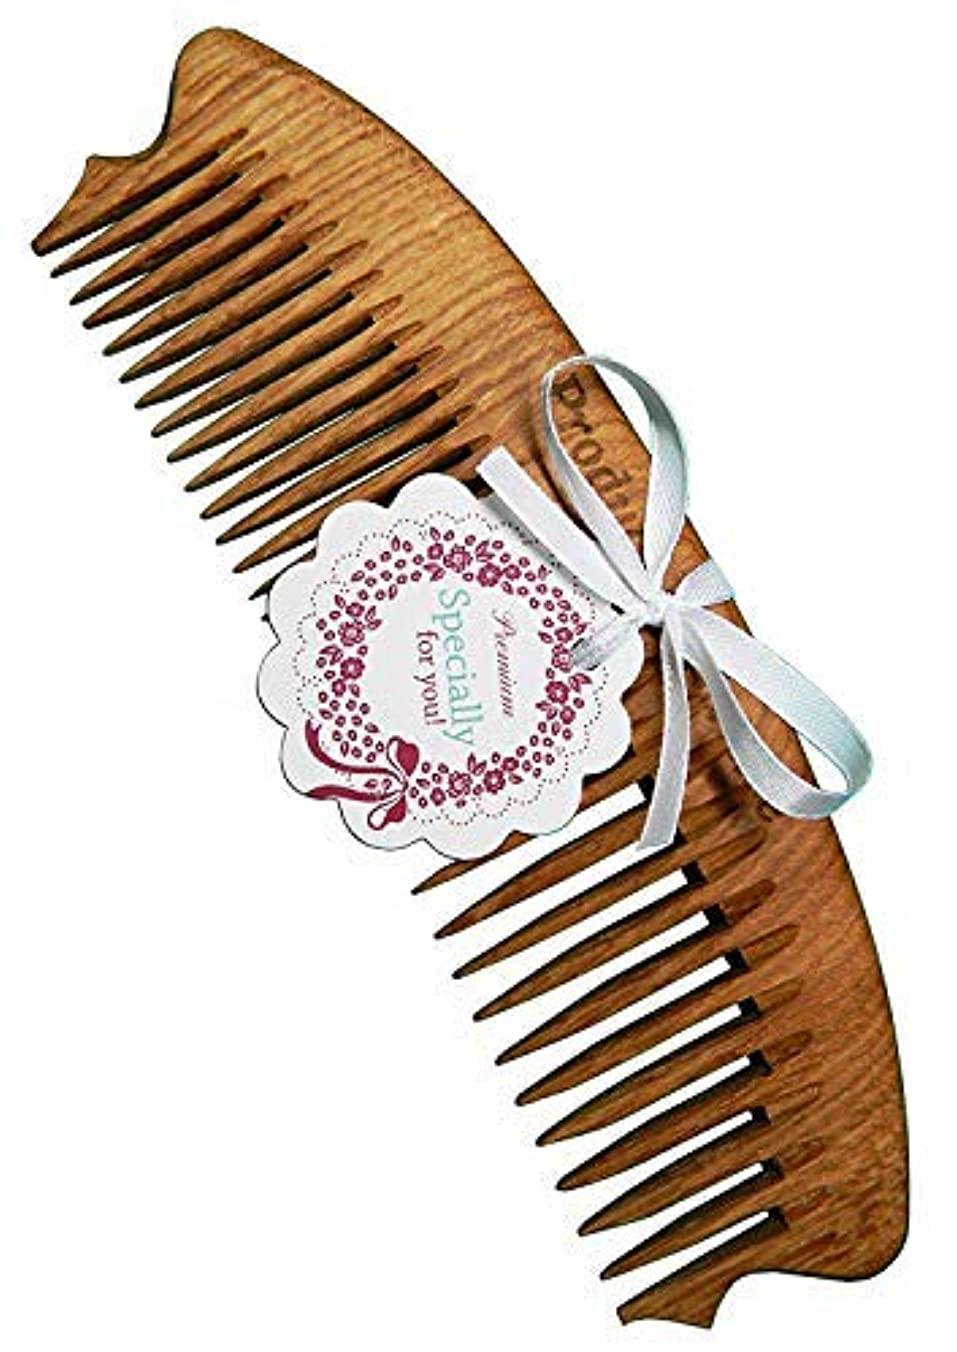 祝う雇用タウポ湖Wooden comb It is a special comb made from natural oak wood 100% HANDCRAFTED Premium [並行輸入品]